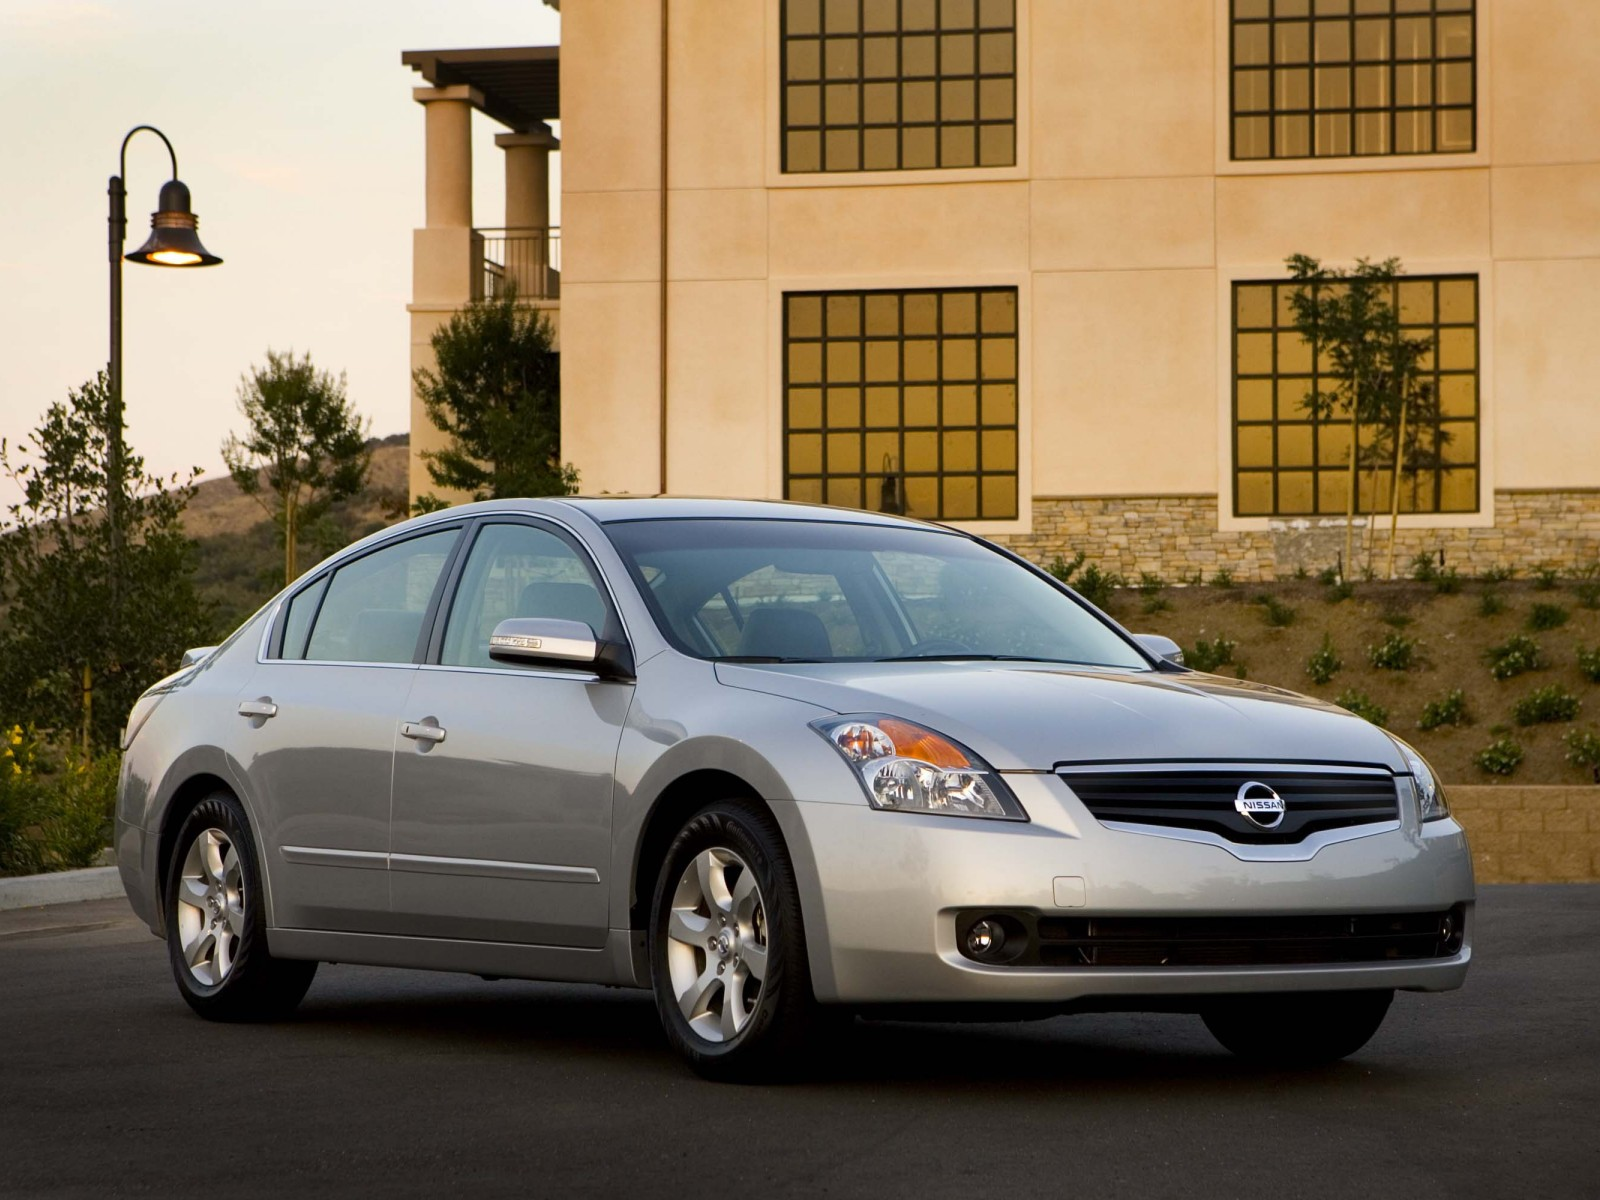 2009 nissan altima sl wallpapers pictures specifications interiors and exteriors images. Black Bedroom Furniture Sets. Home Design Ideas